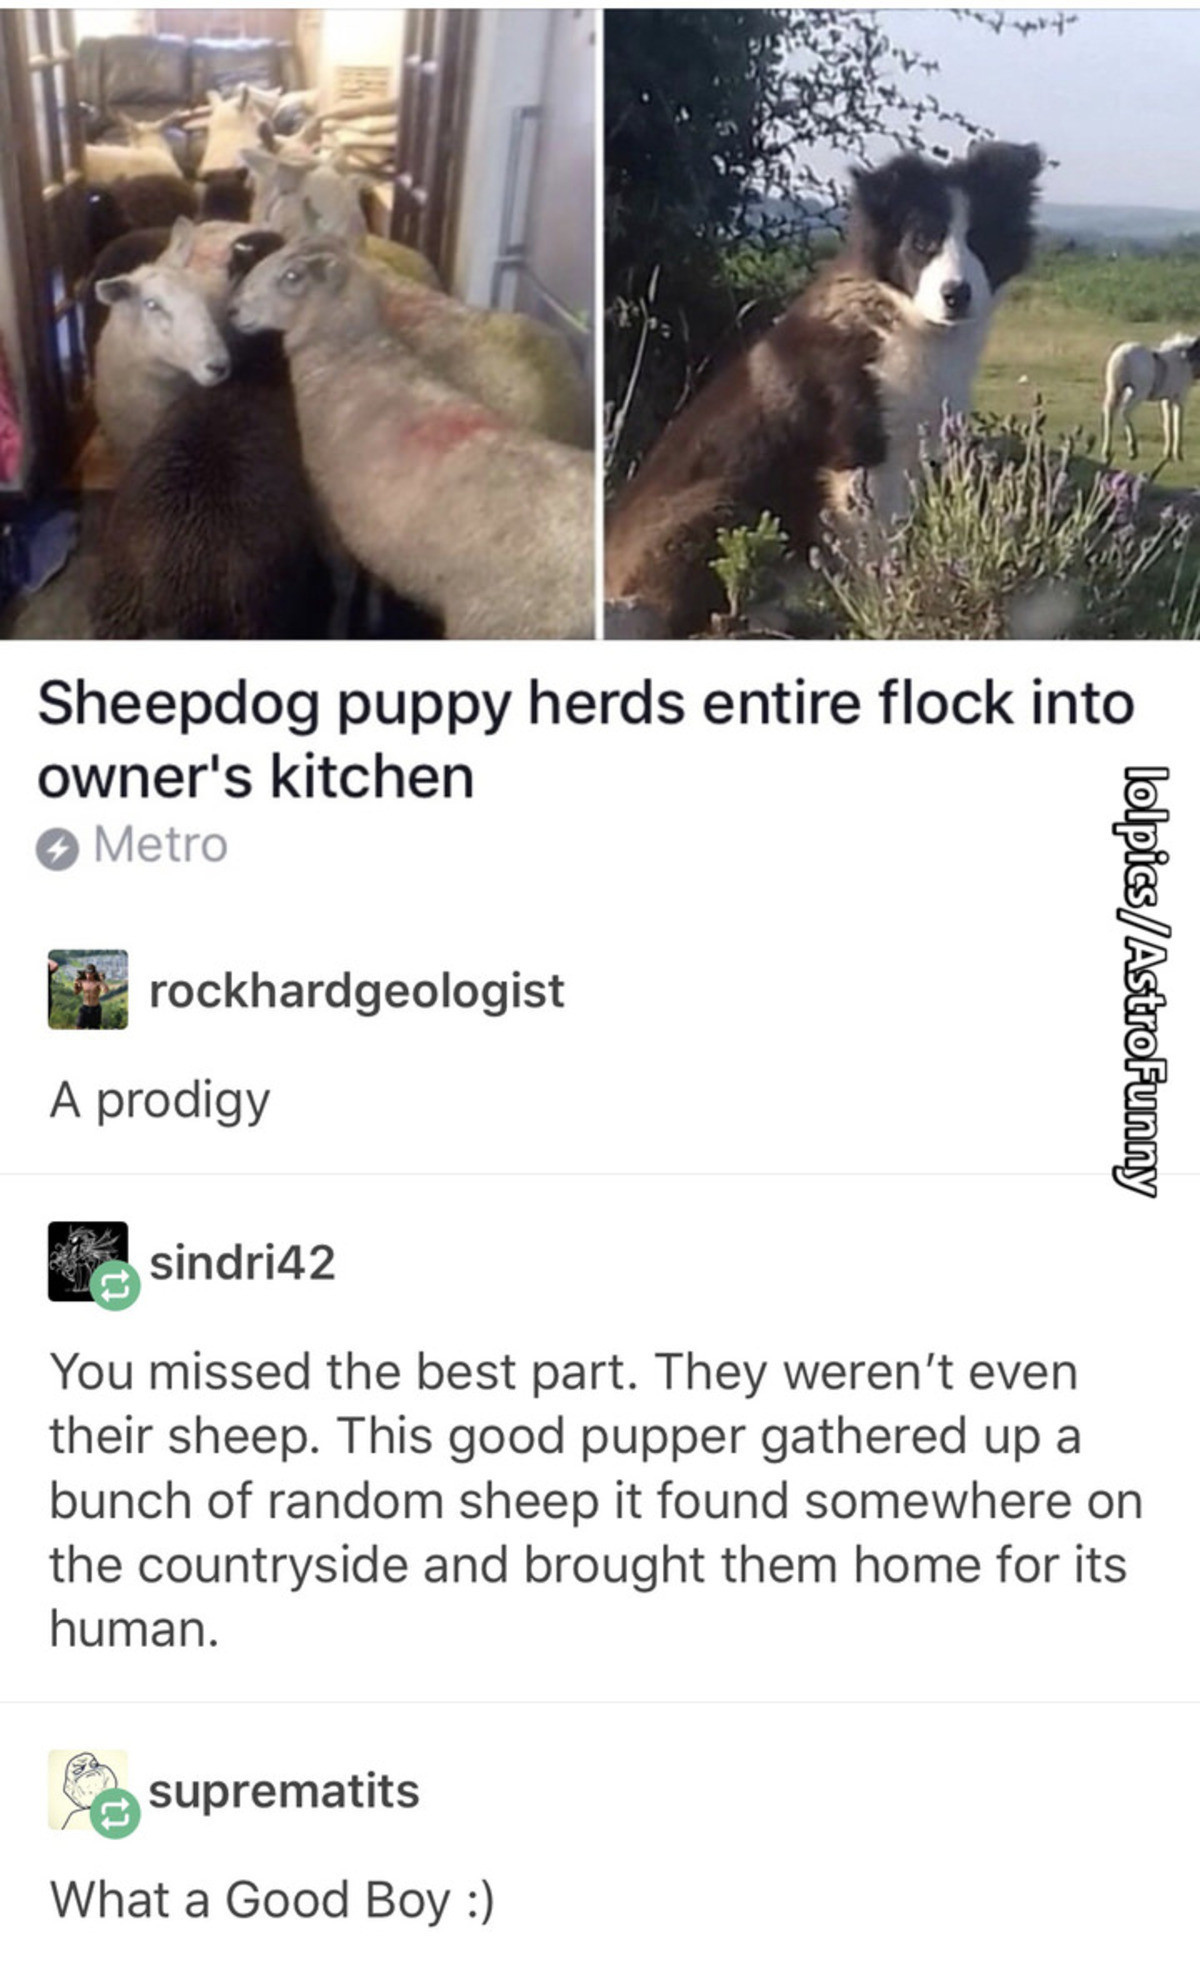 The Goodest Boy. join list: CuteDogs (233 subs)Mention Clicks: 4485Msgs Sent: 28713Mention History. Sheepdog puppy herds entire flock into owner' s kitchen 9 Me